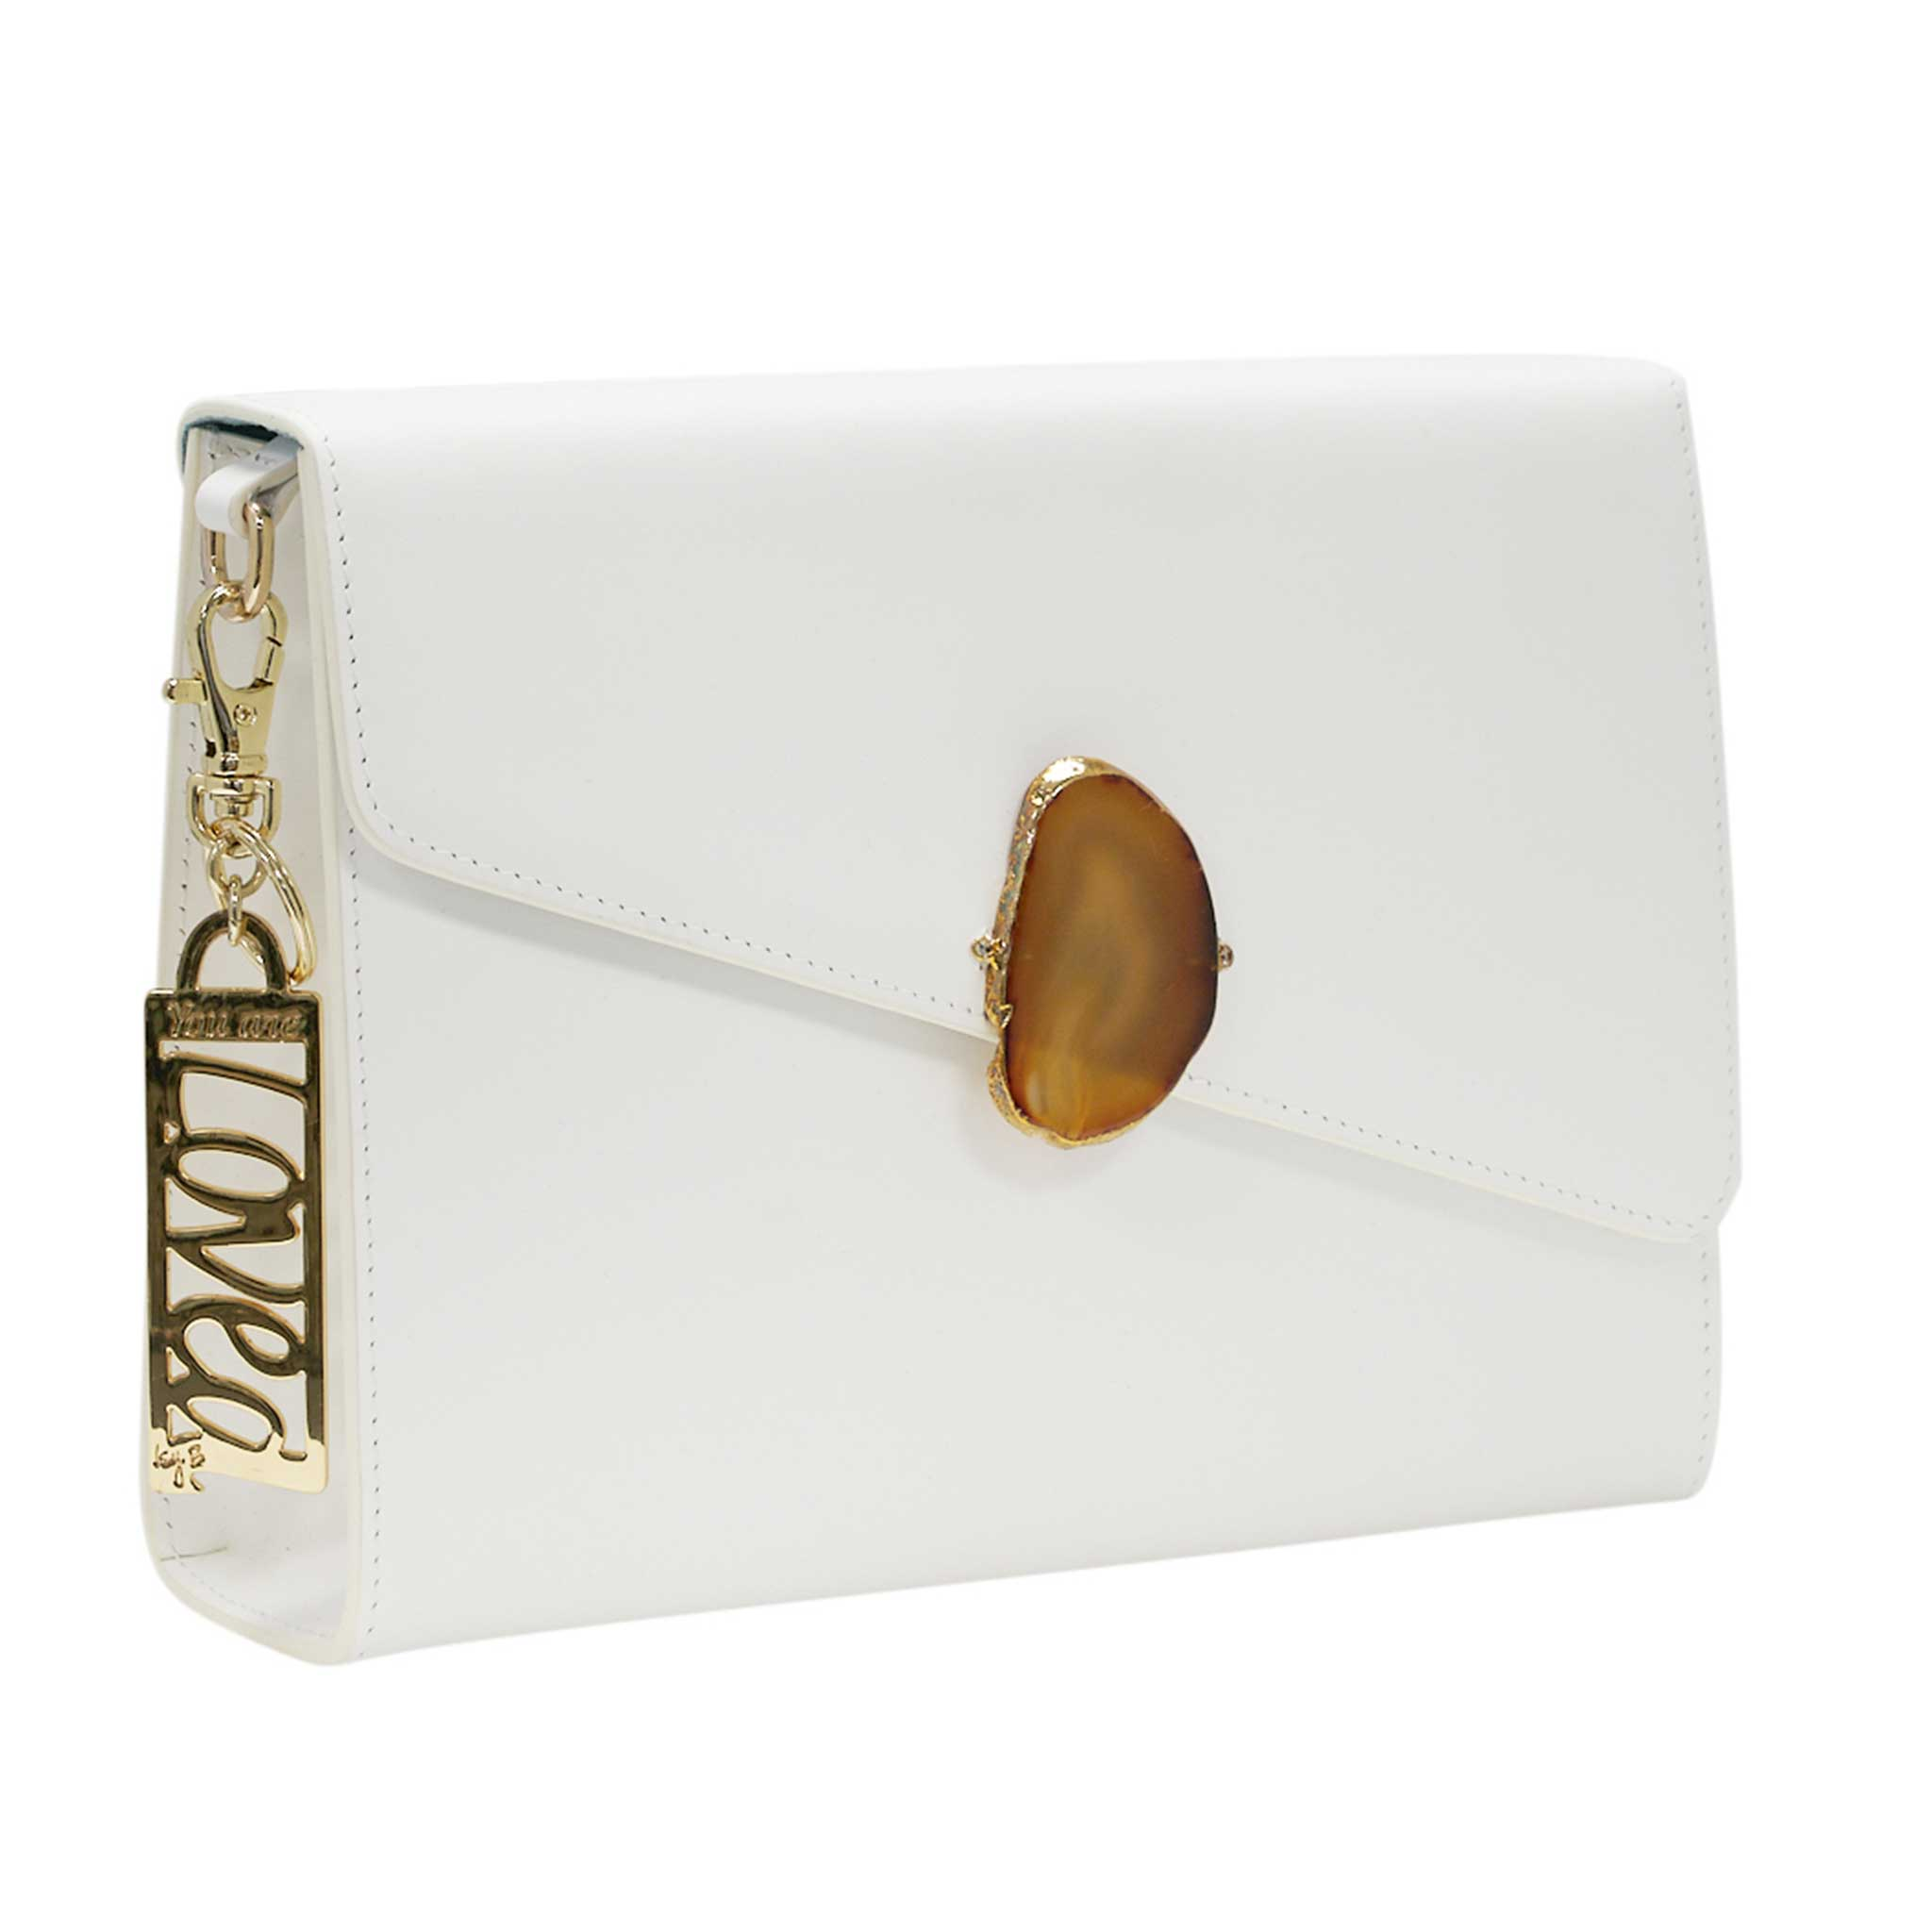 LOVED BAG - MOONSTONE WHITE LEATHER WITH BROWN AGATE - 1.03.001.44